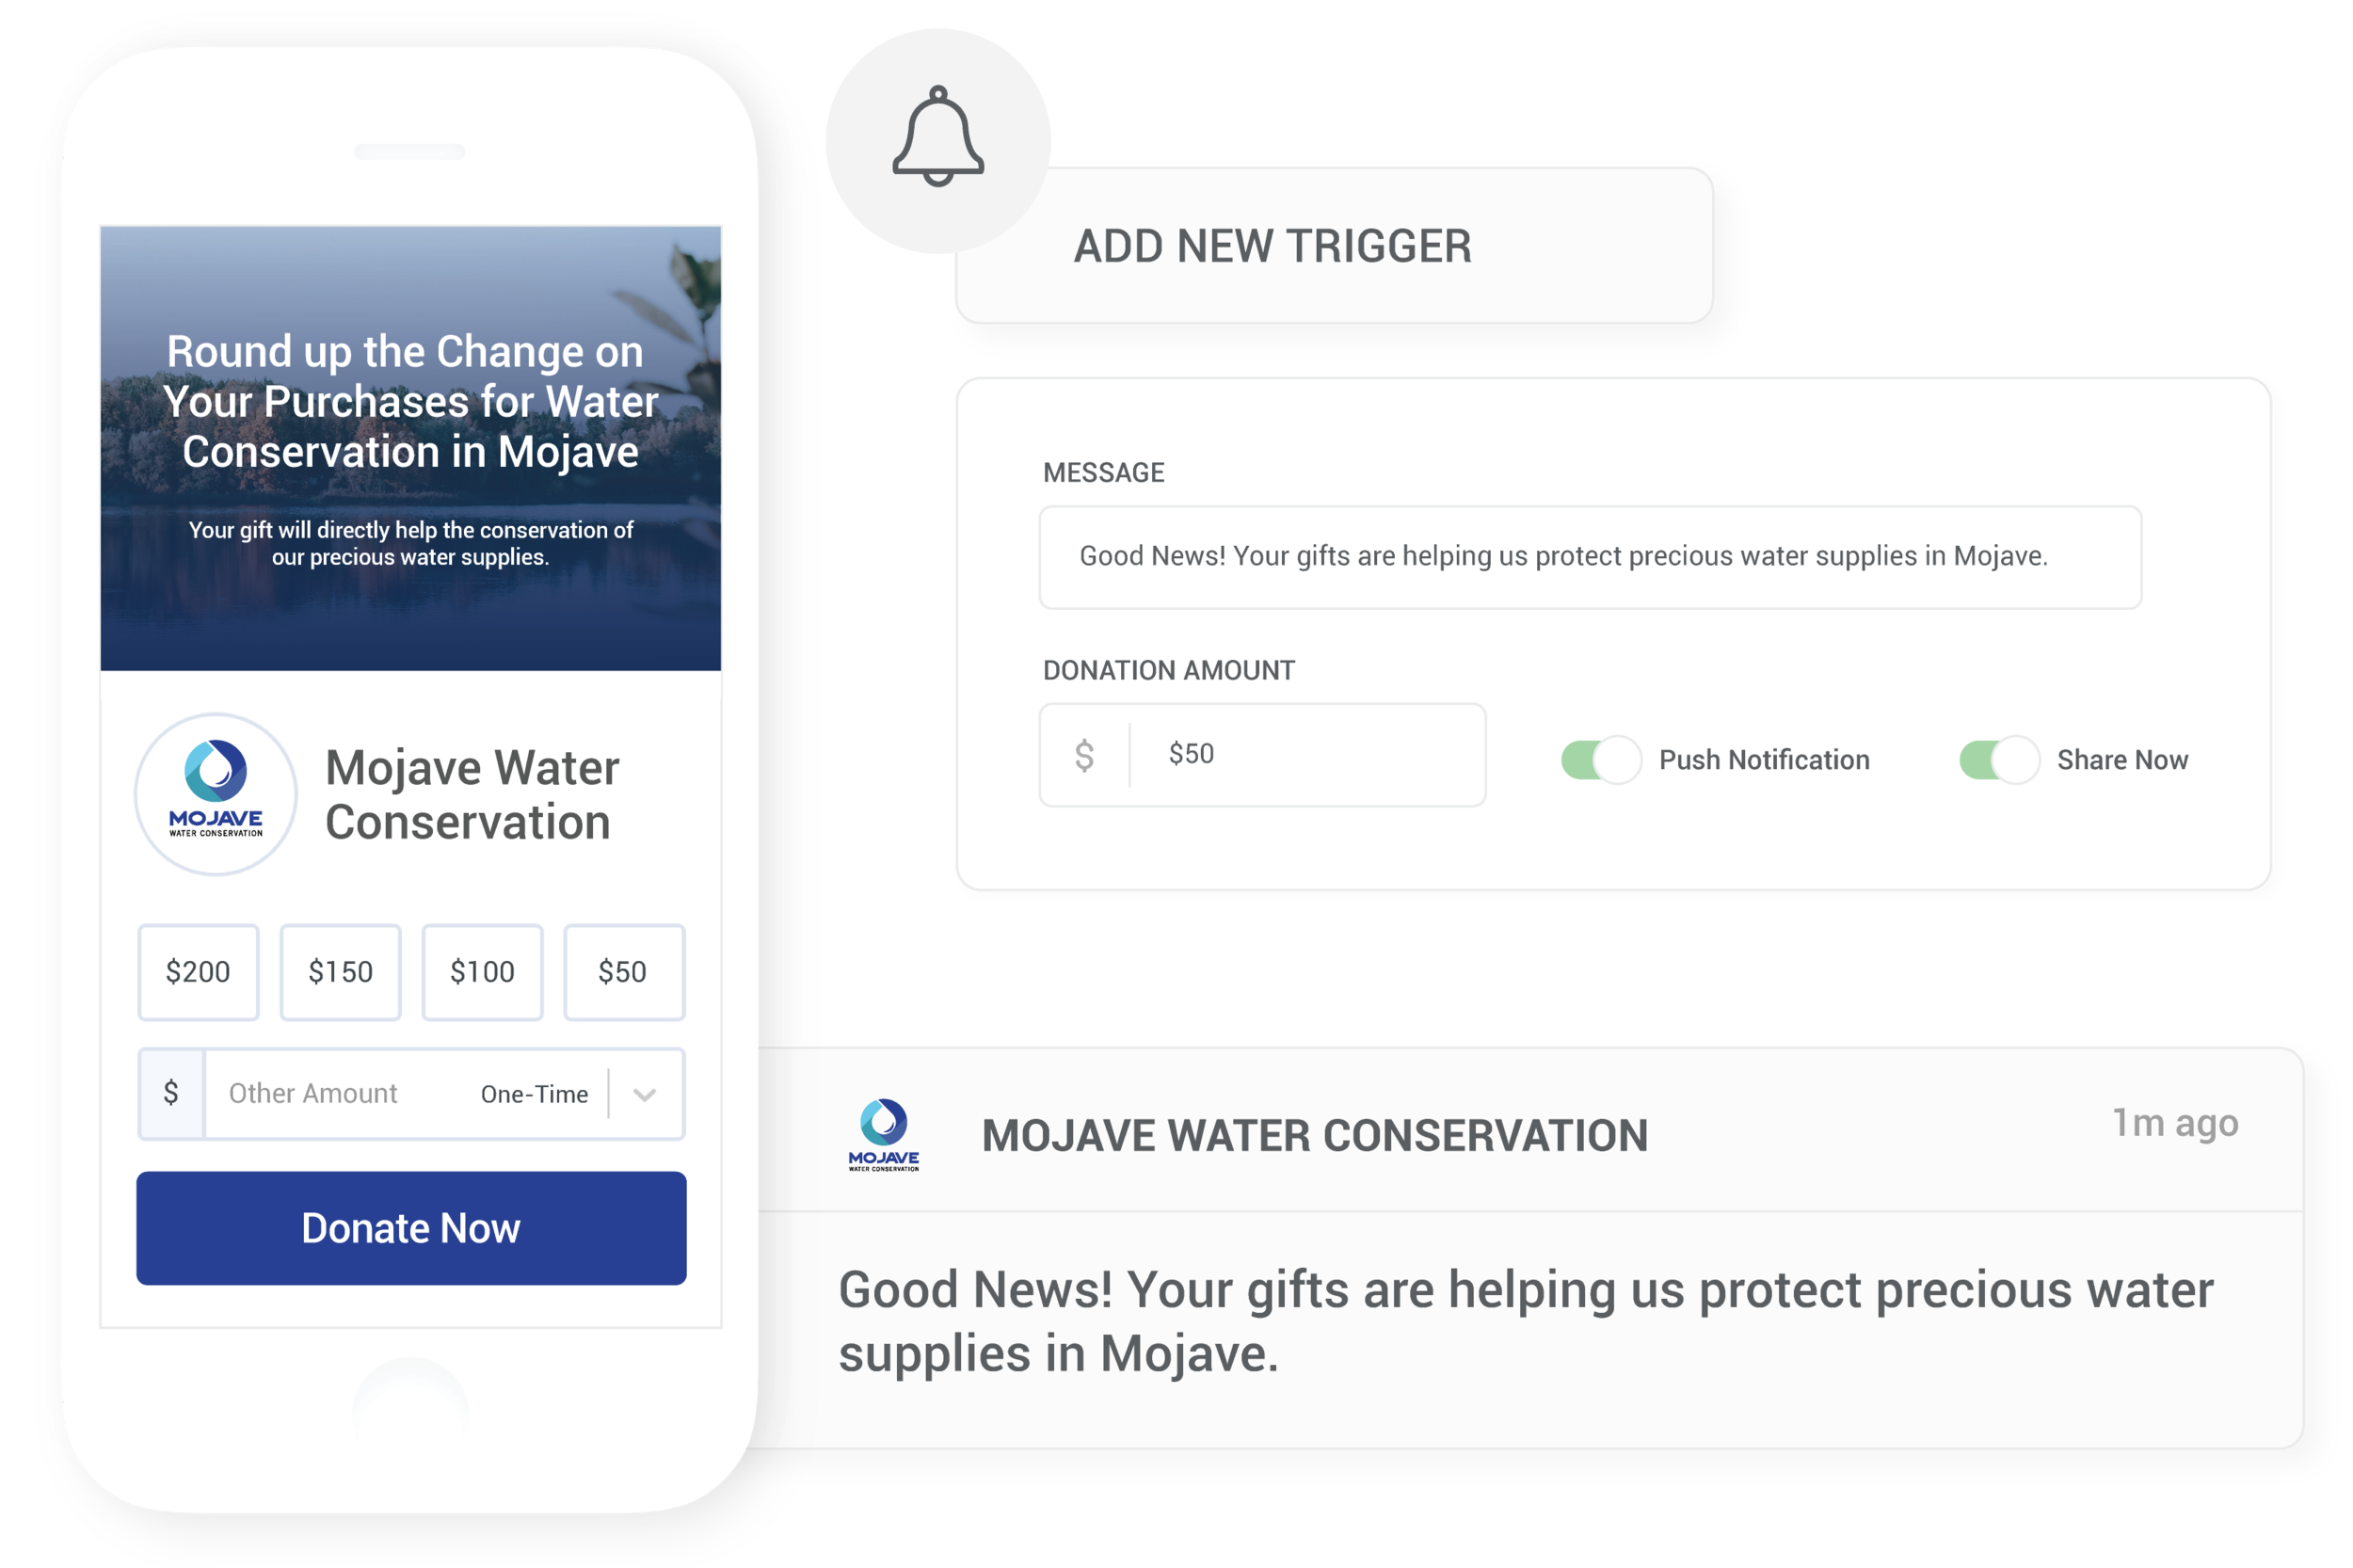 Inform and delight - Nurture your donor relationships with mobile forward communications. Send push notifications and emails in real time or on a specific date. Trigger content when donors reach giving milestones.